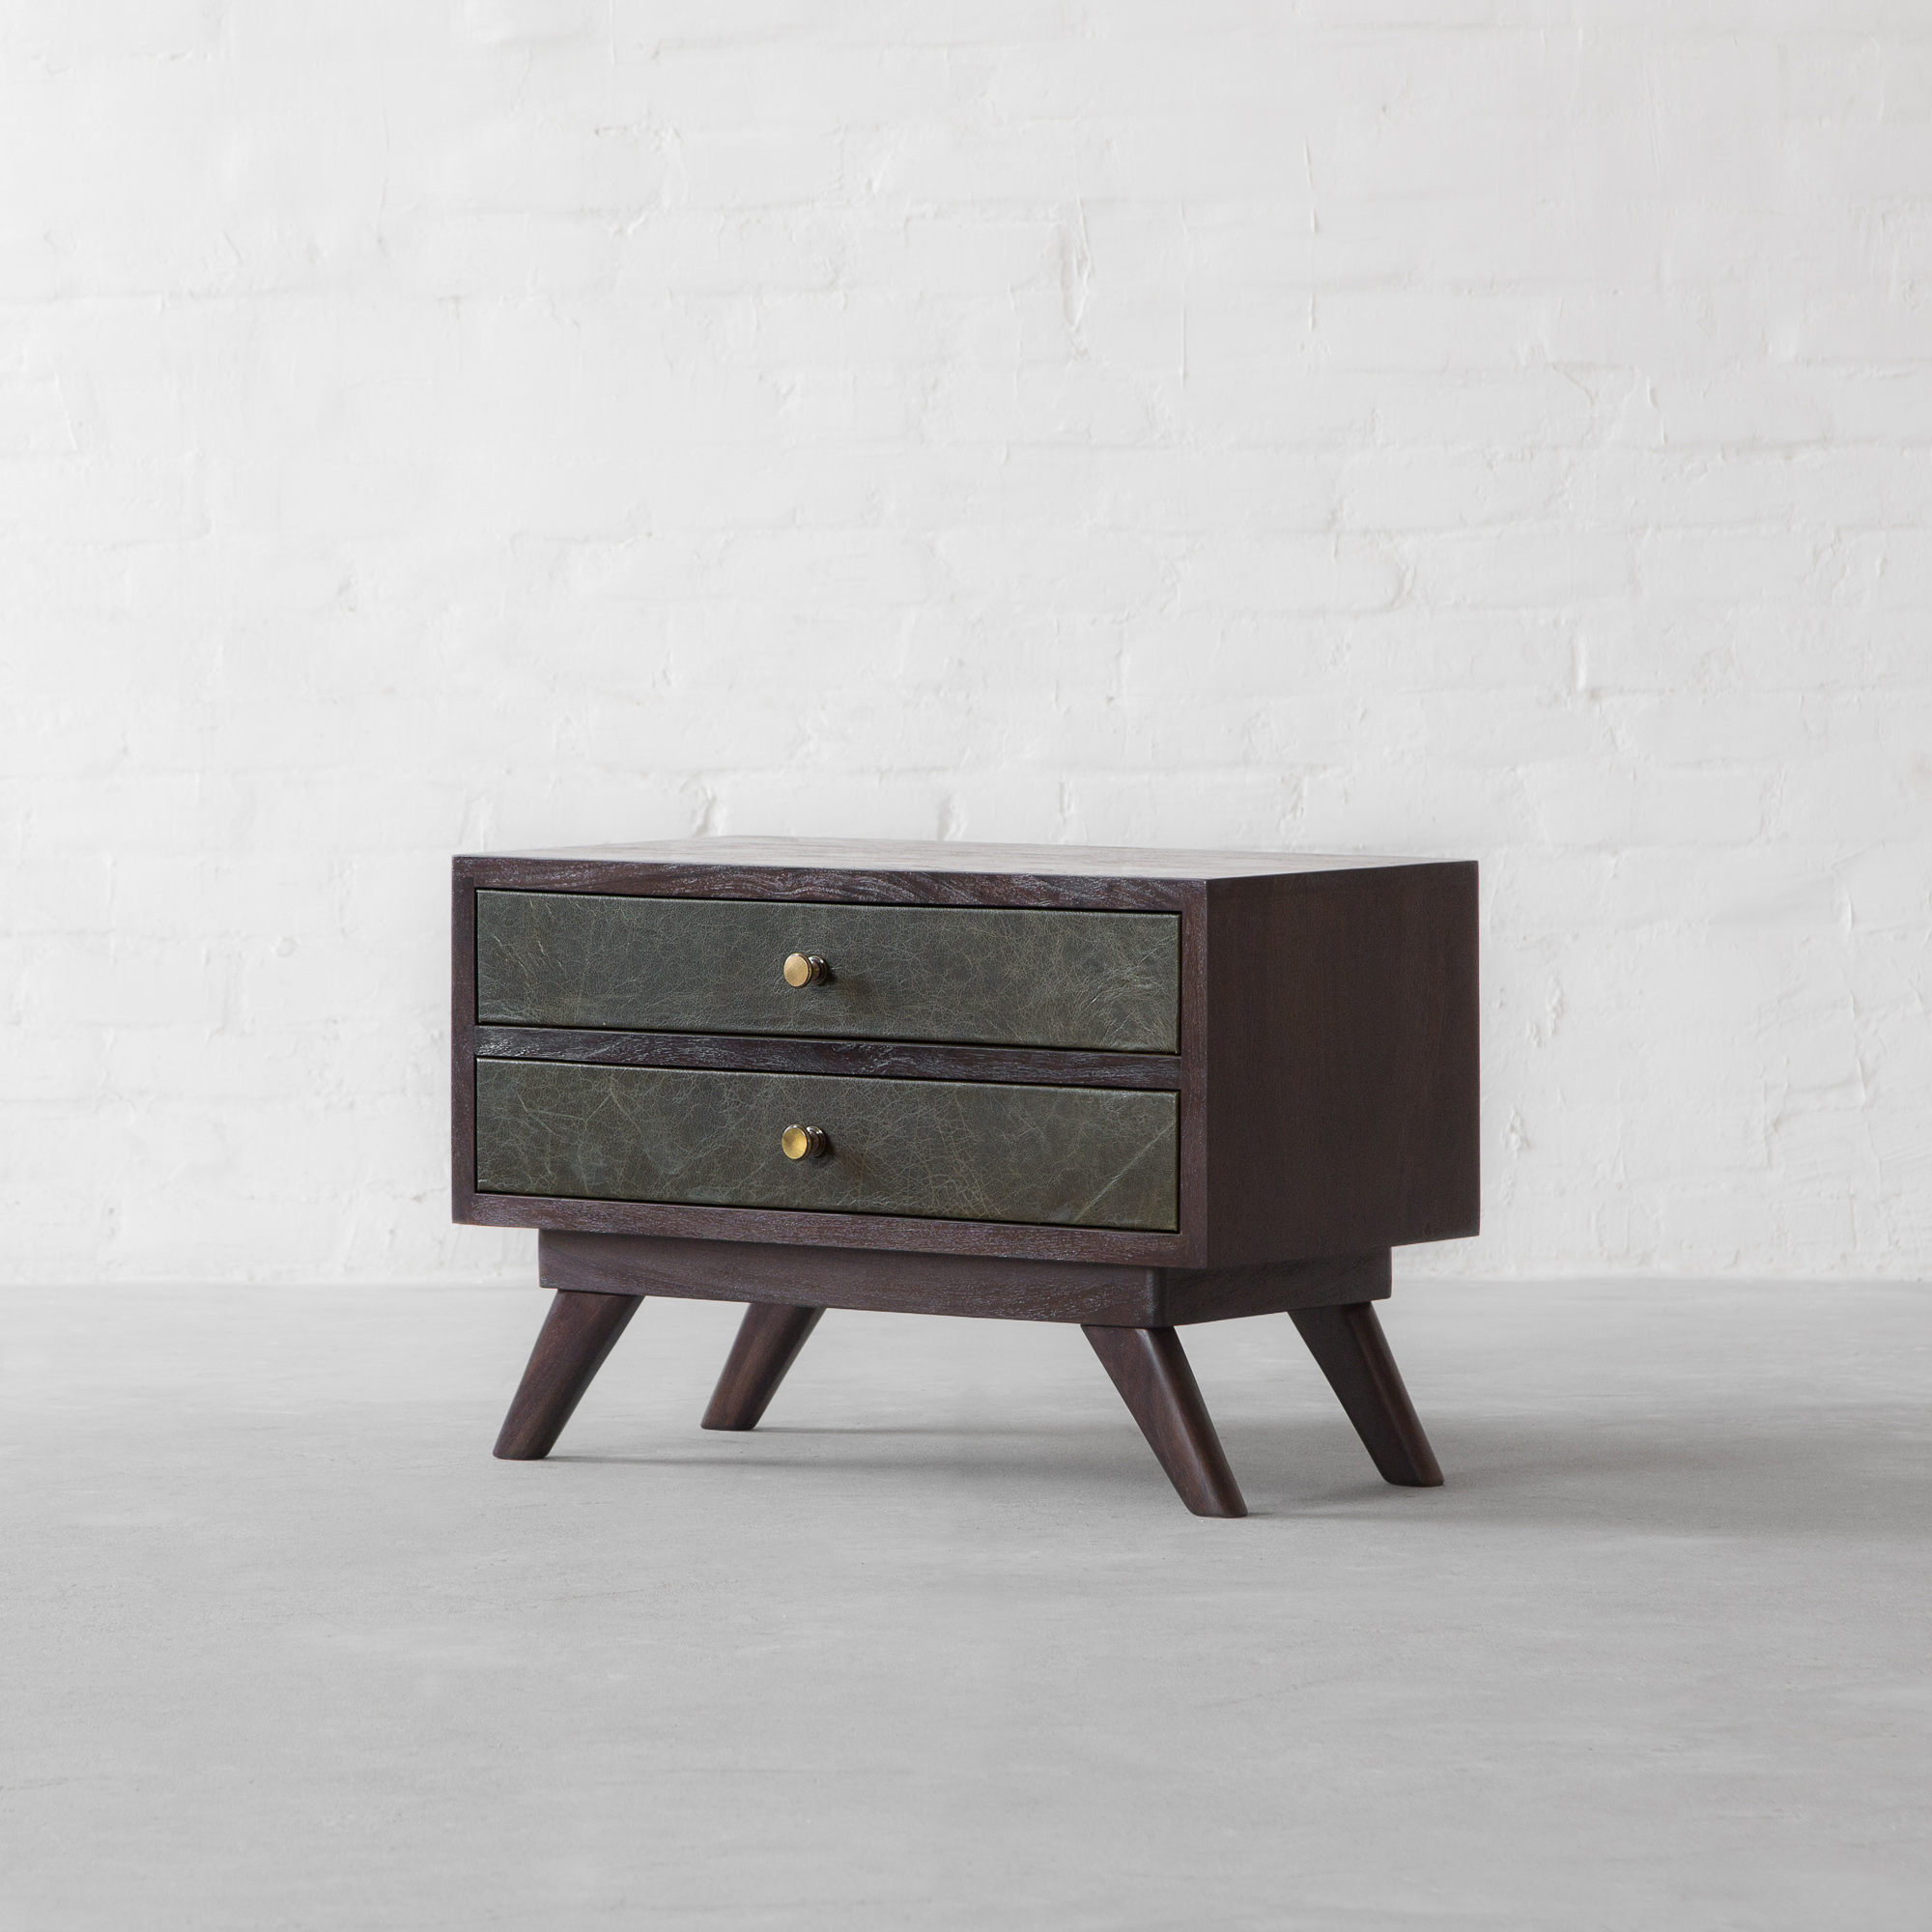 Bombay Leather Cladded Side Table